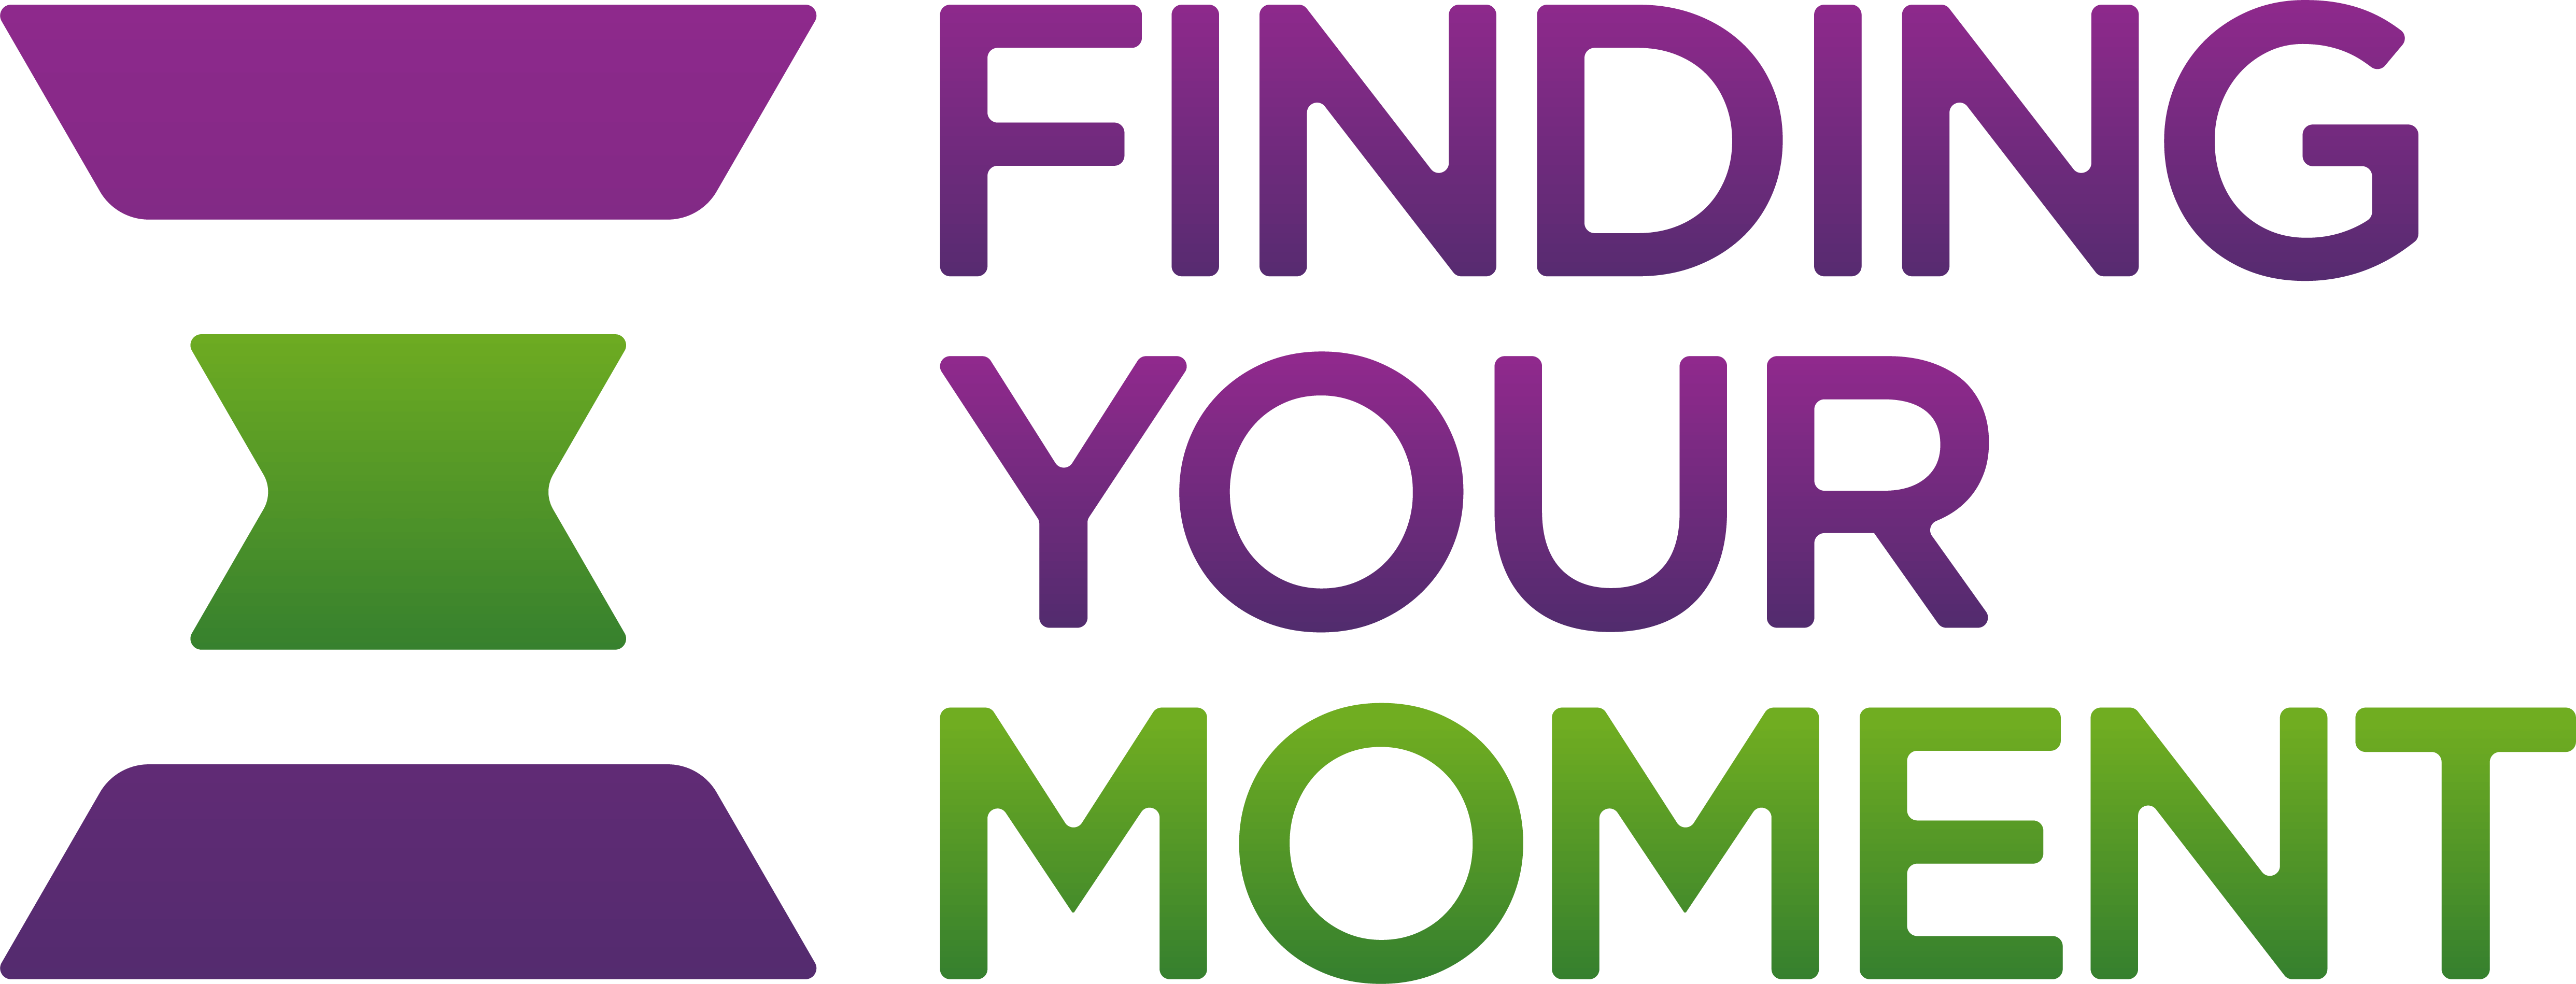 finding your moment logo no tagline